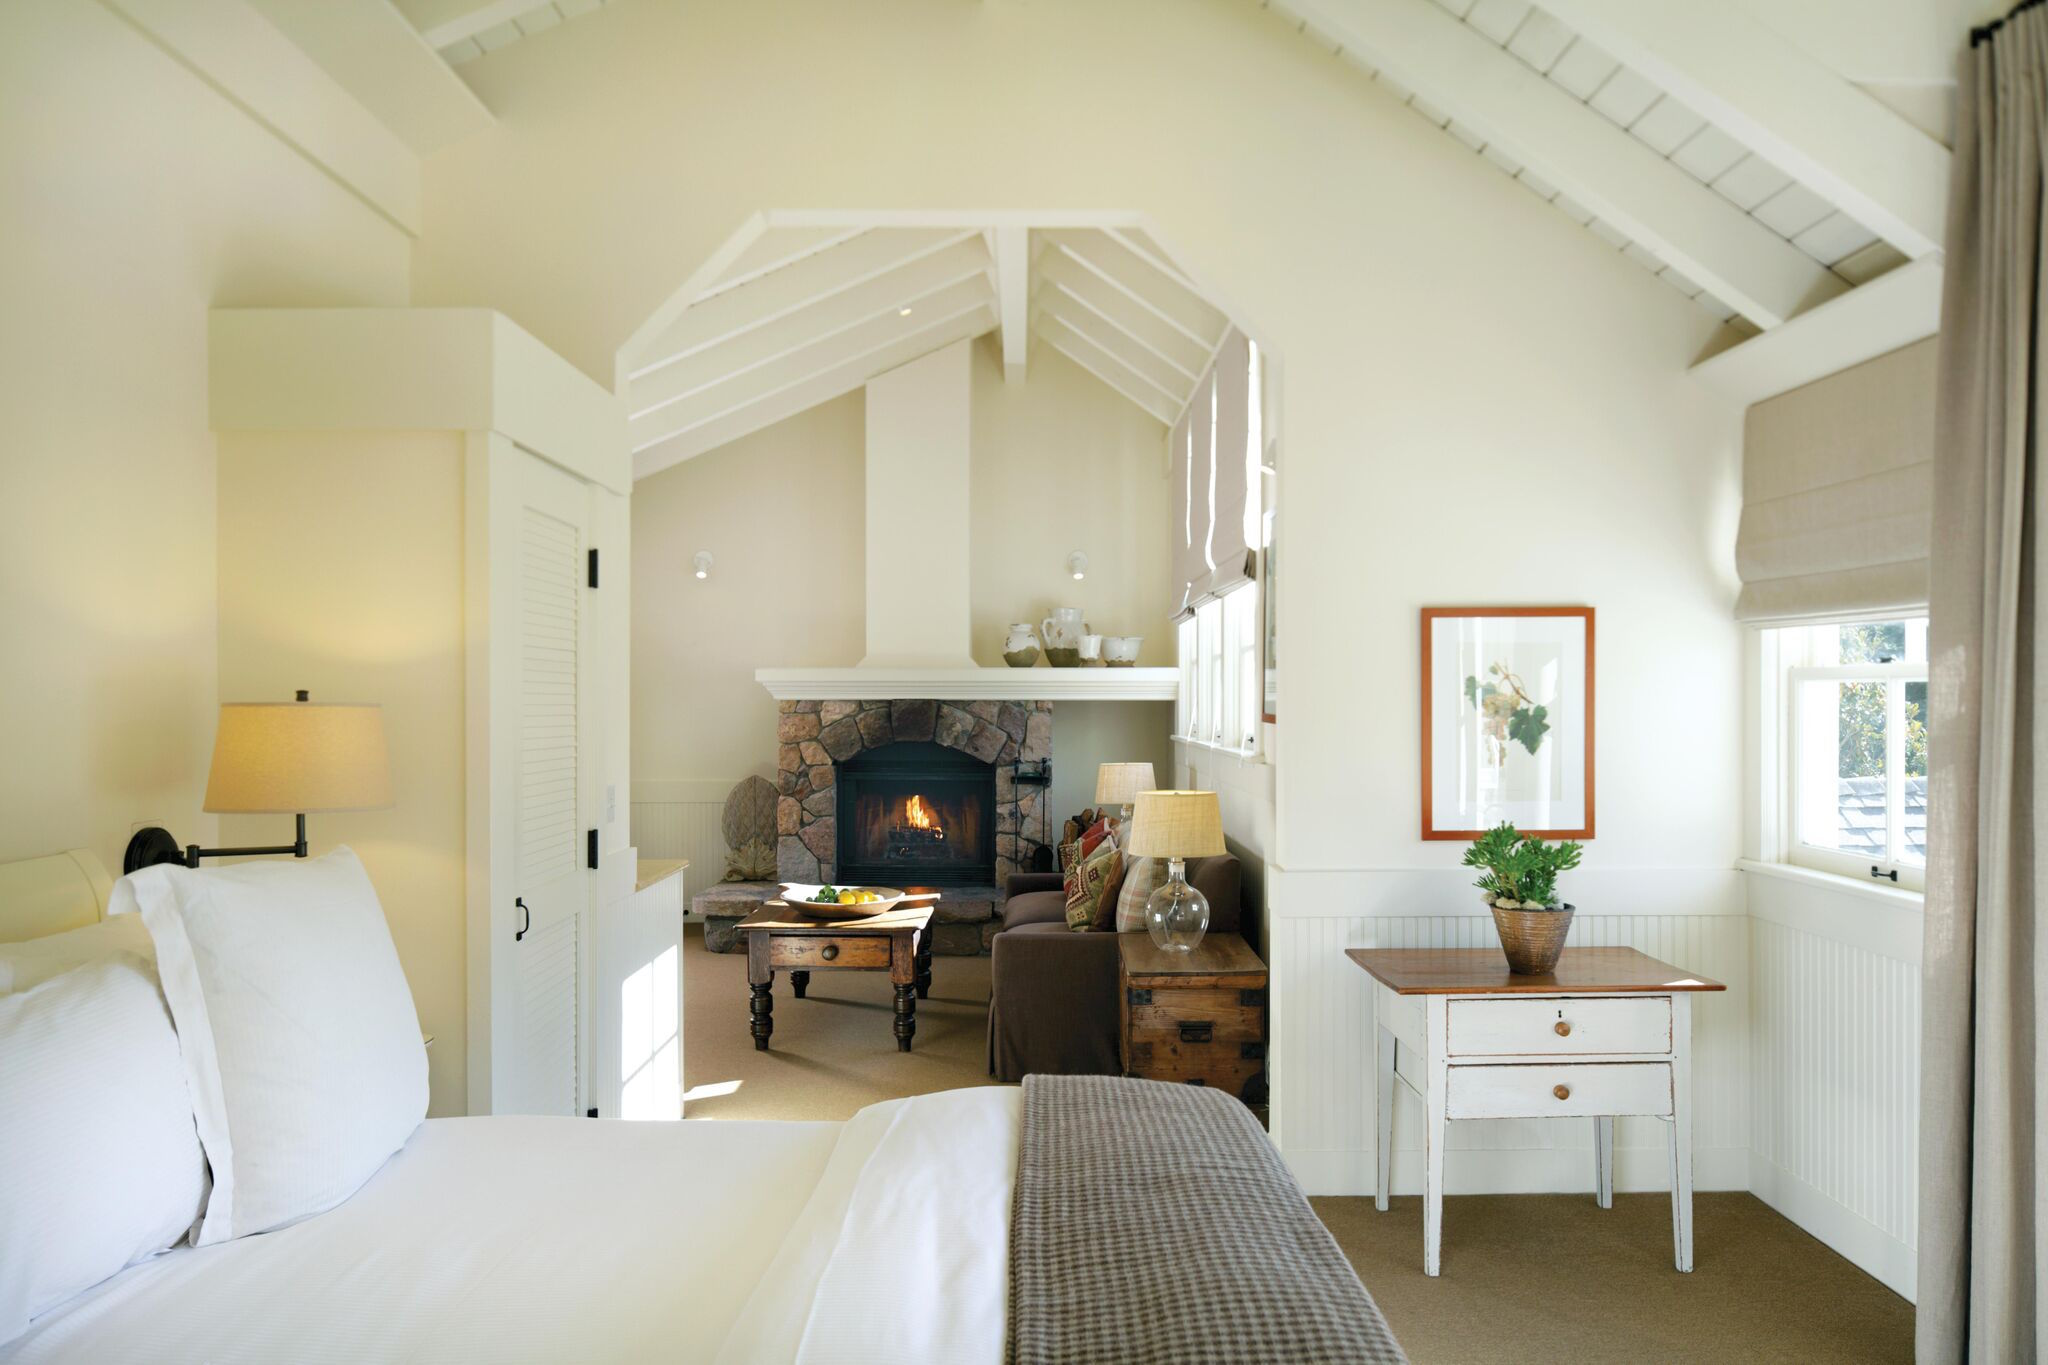 One of the hotel's guestrooms